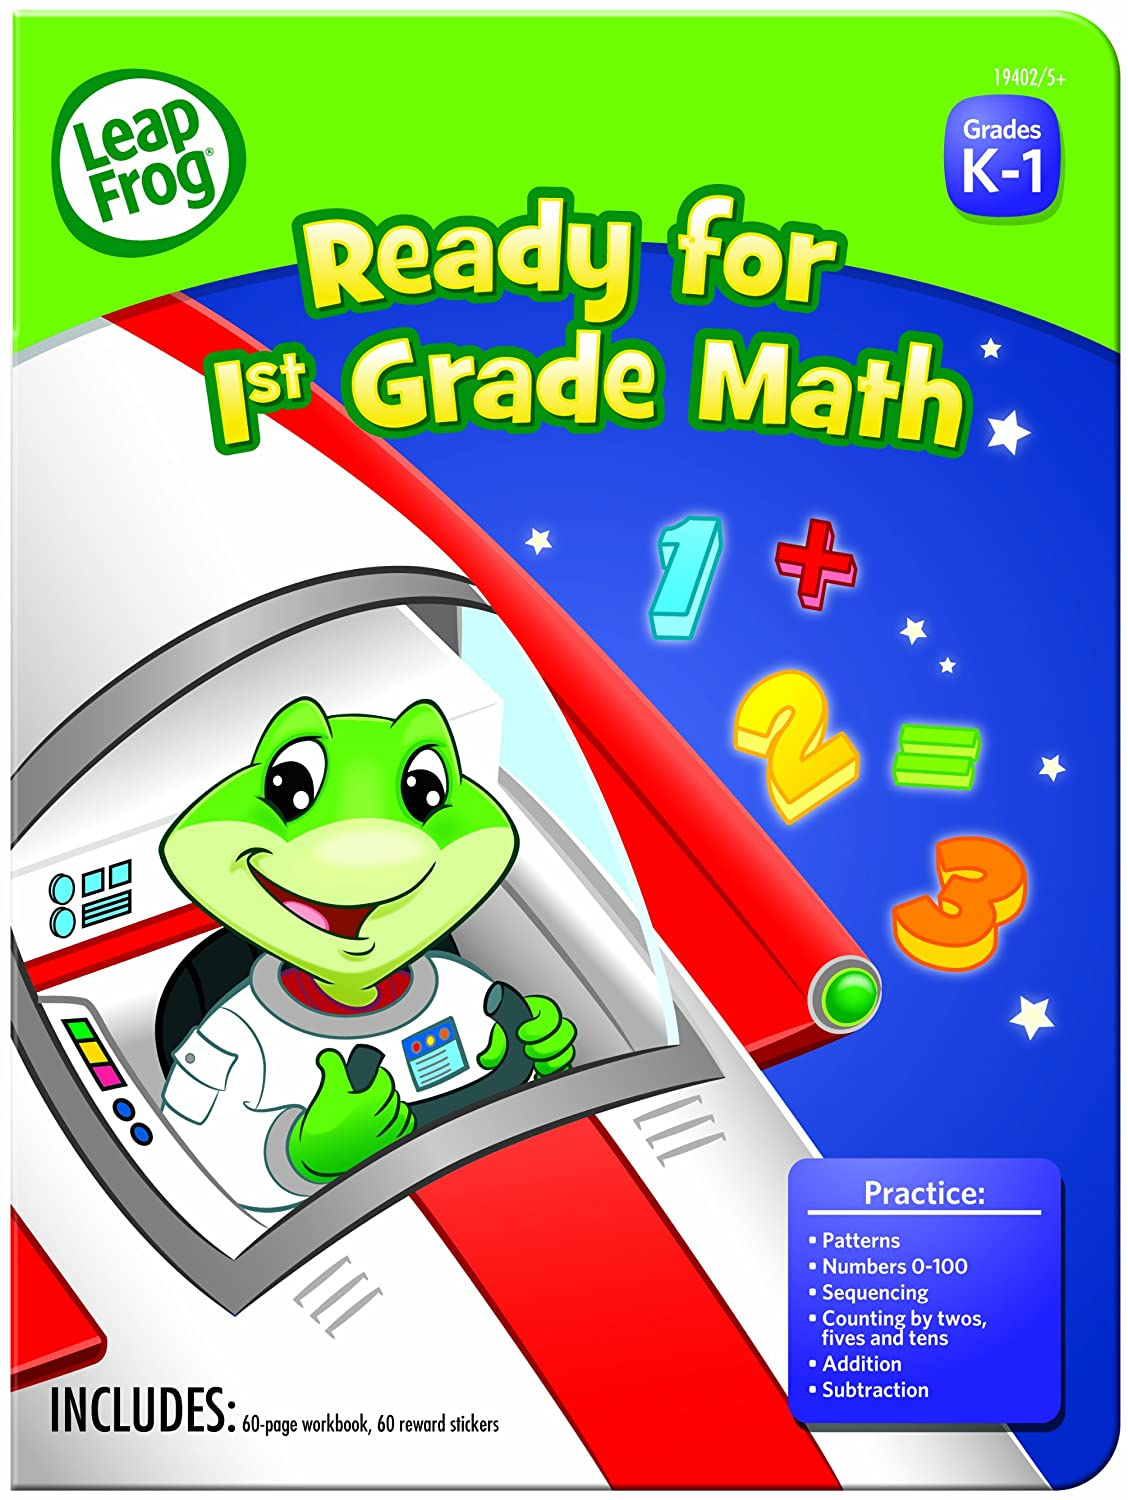 Amazon.com : LeapFrog Ready for 1st Grade Math Workbook with 60 ...